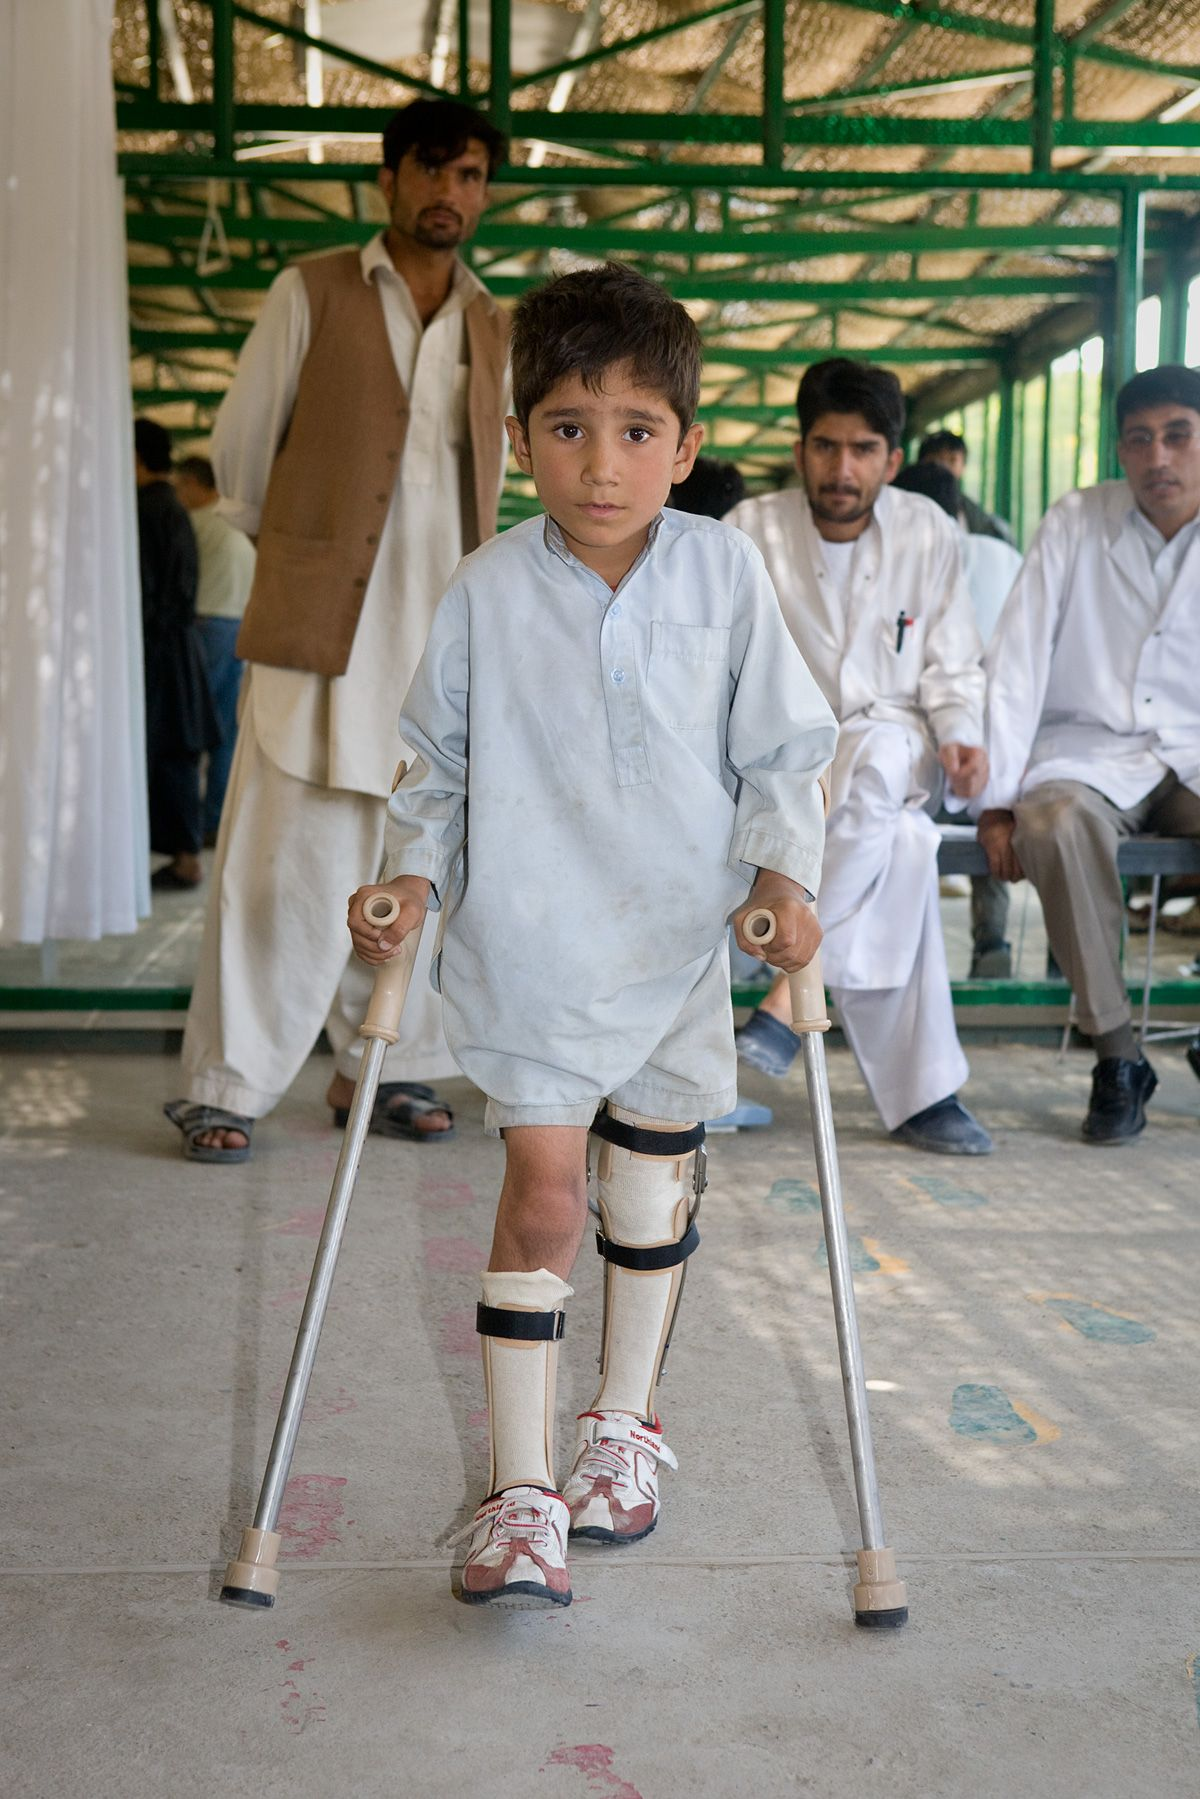 An Afghan Boy on Crutches